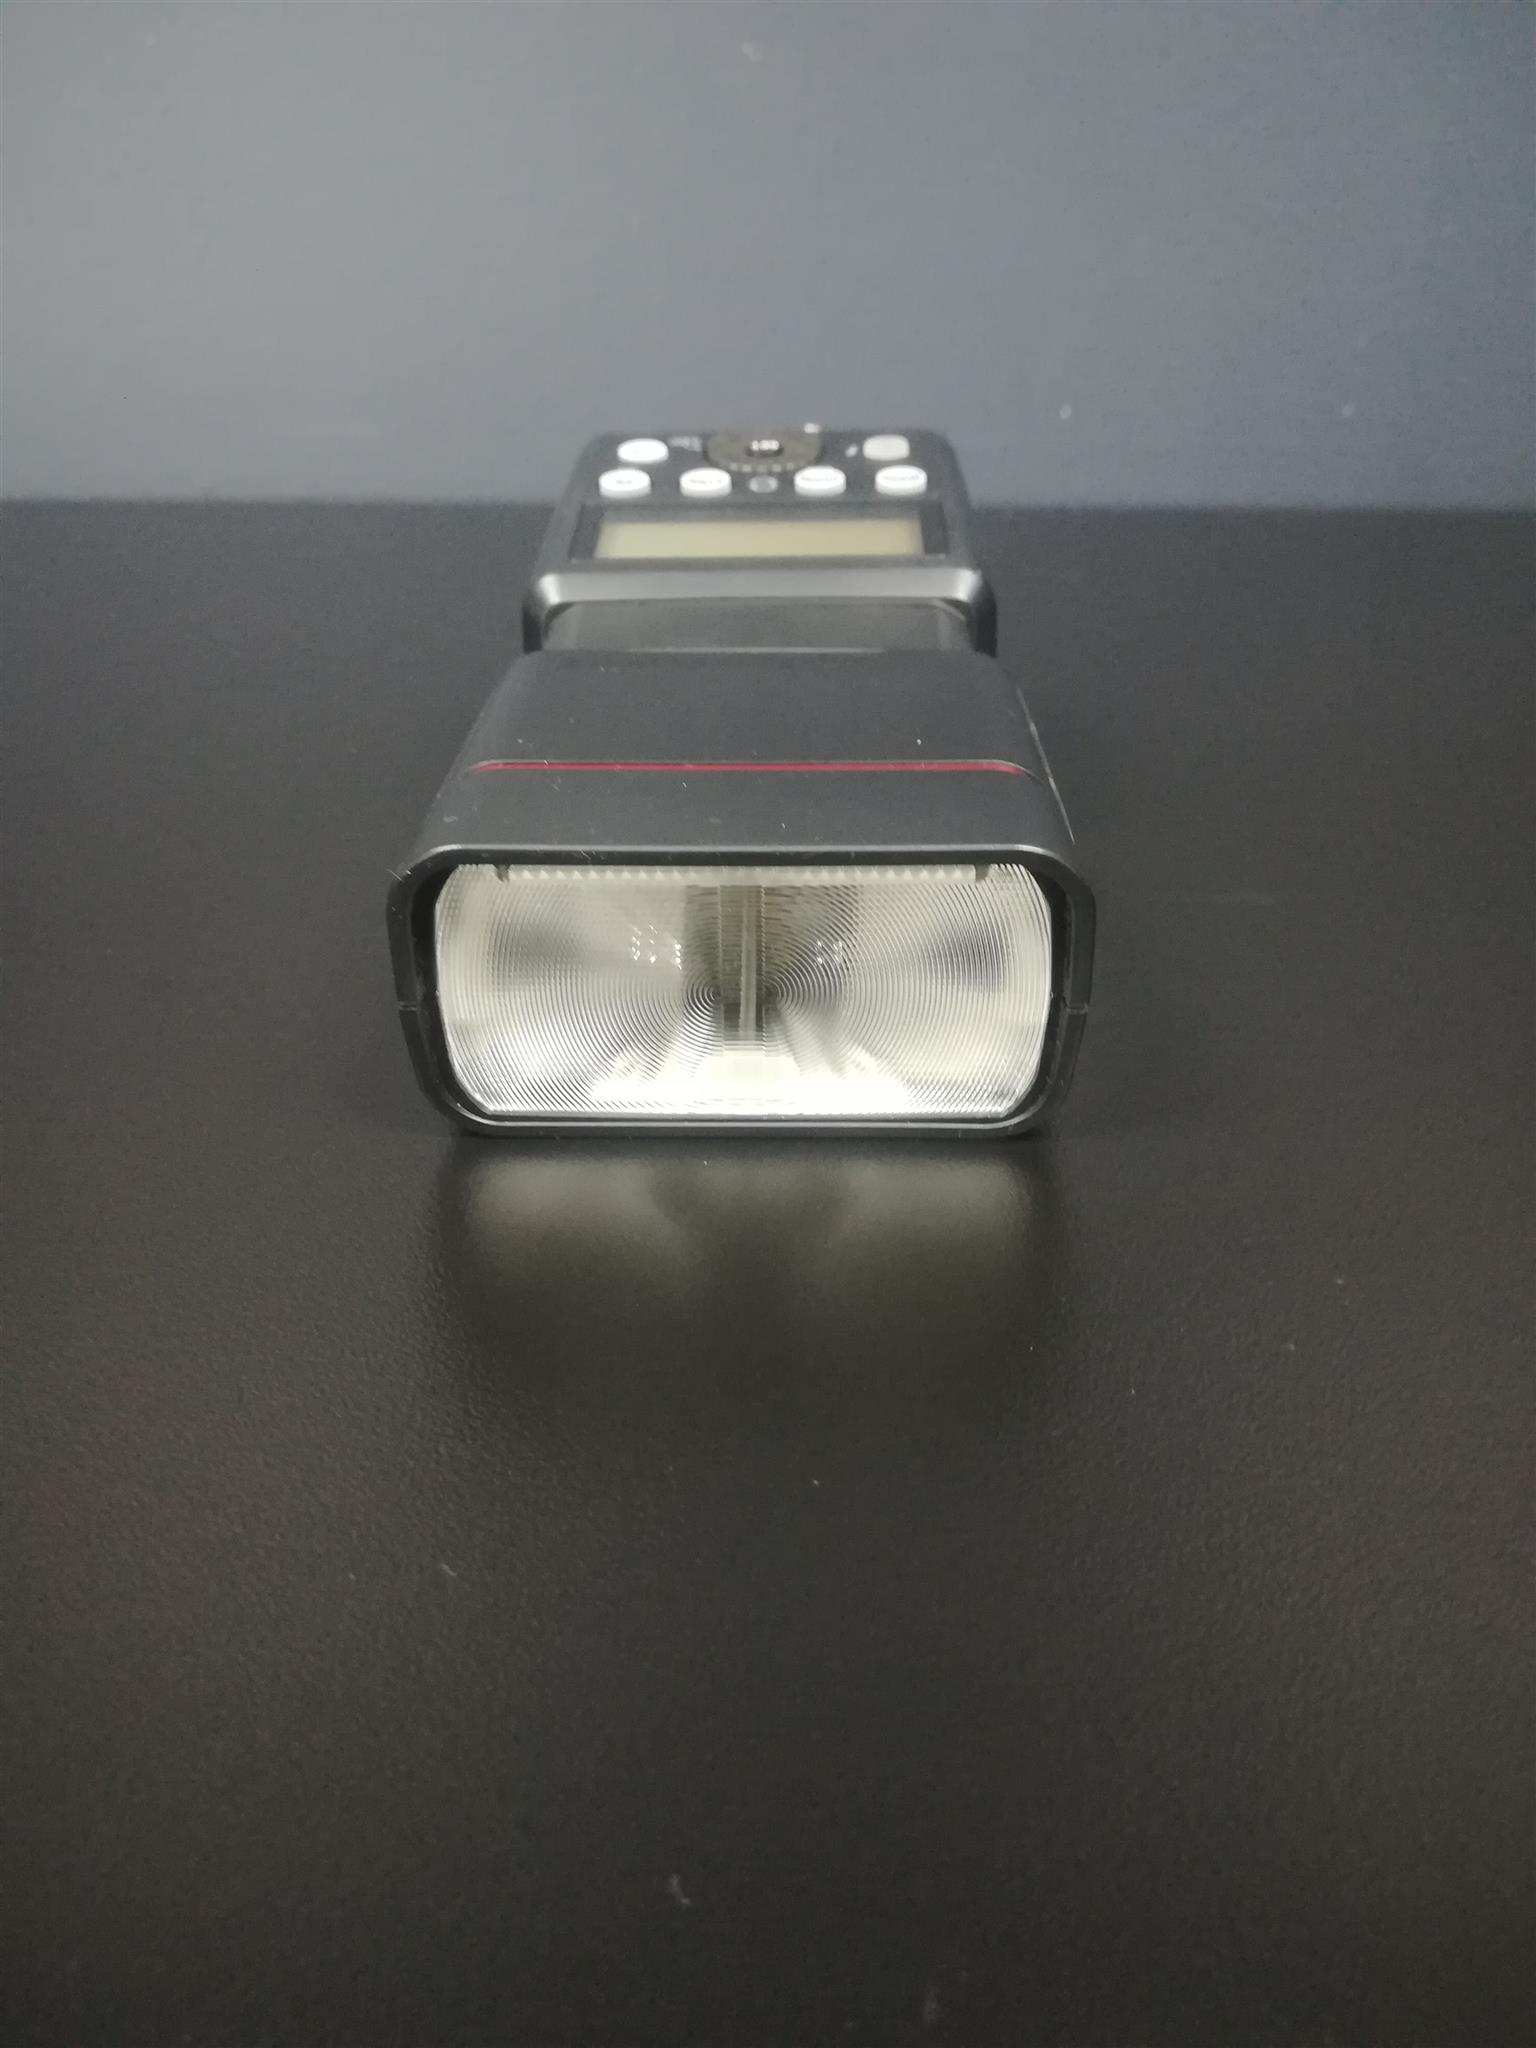 Hahnel 360Rt Detachable flash suitable for Nikon, Cannon, Fuji film and Sony cameras